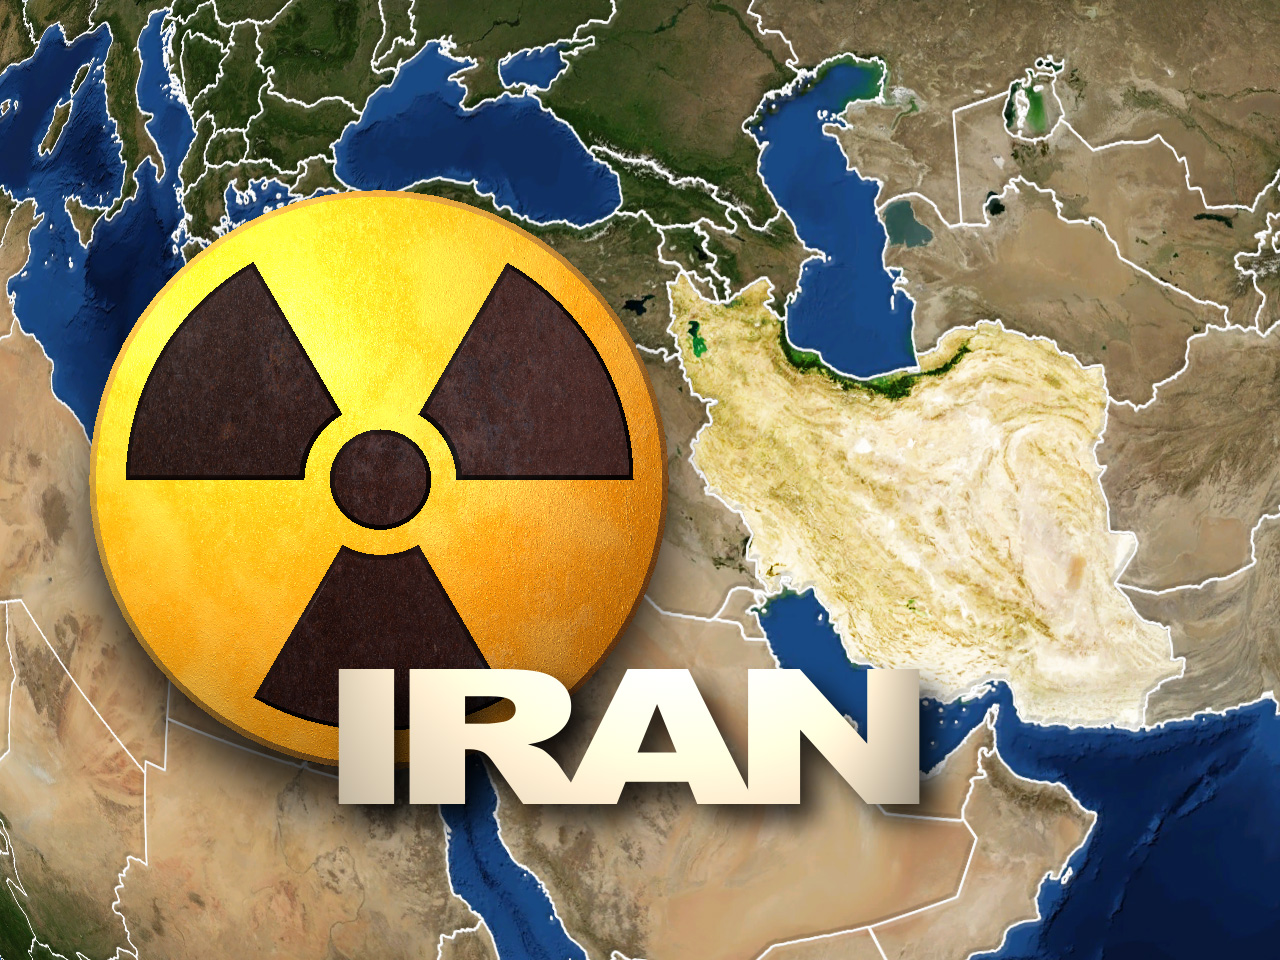 Iran must explain the undeclared site - UN watchdog